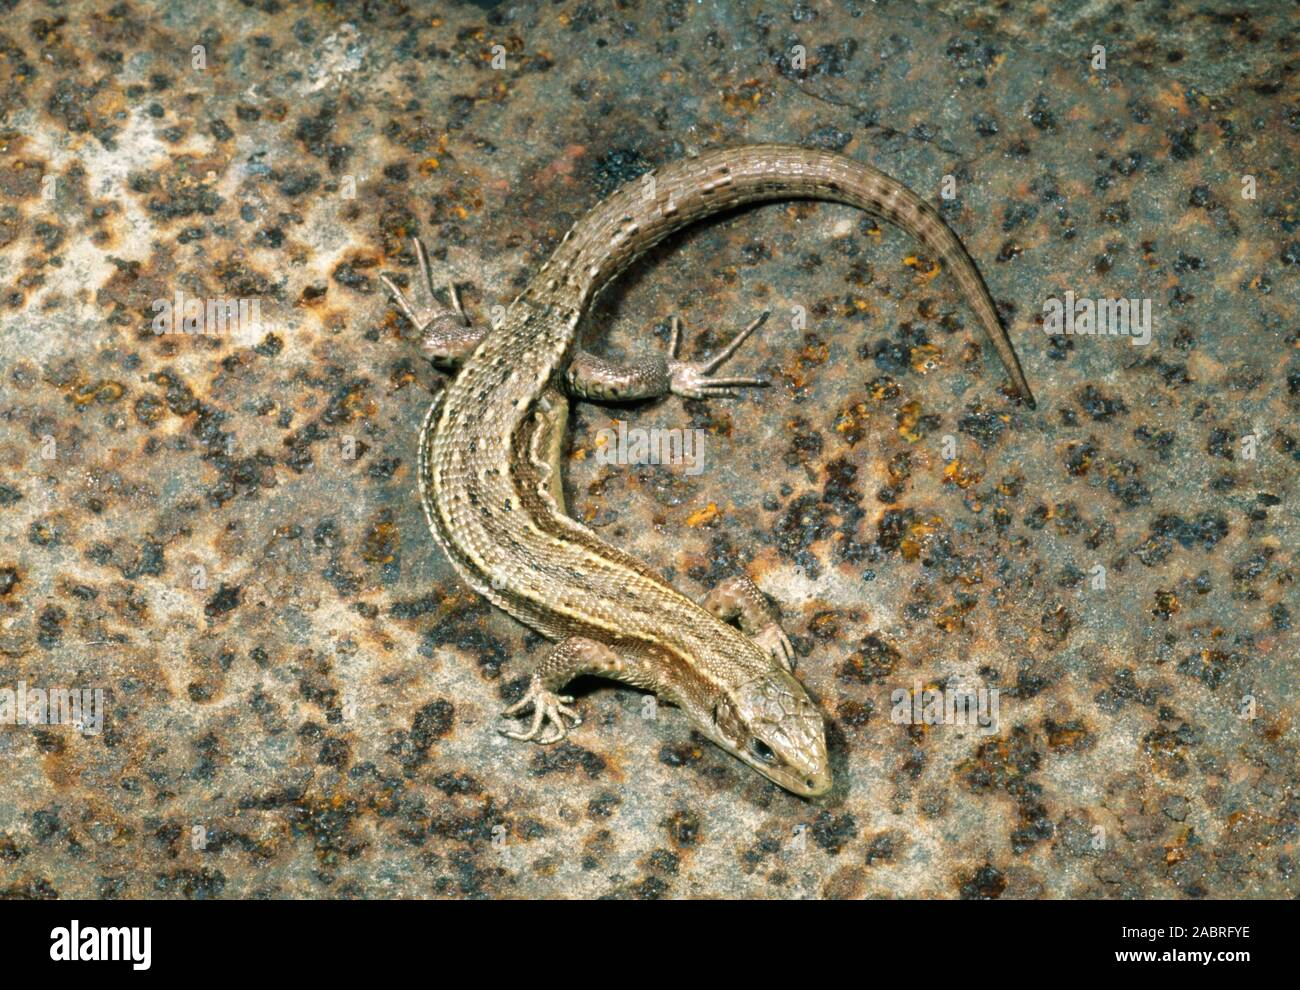 COMMON or VIVIPAROUS LIZARD Zootoca (Lacerta) vivipara. Recently gravid or pregnant female. Showing body condition after parturition. Stock Photo